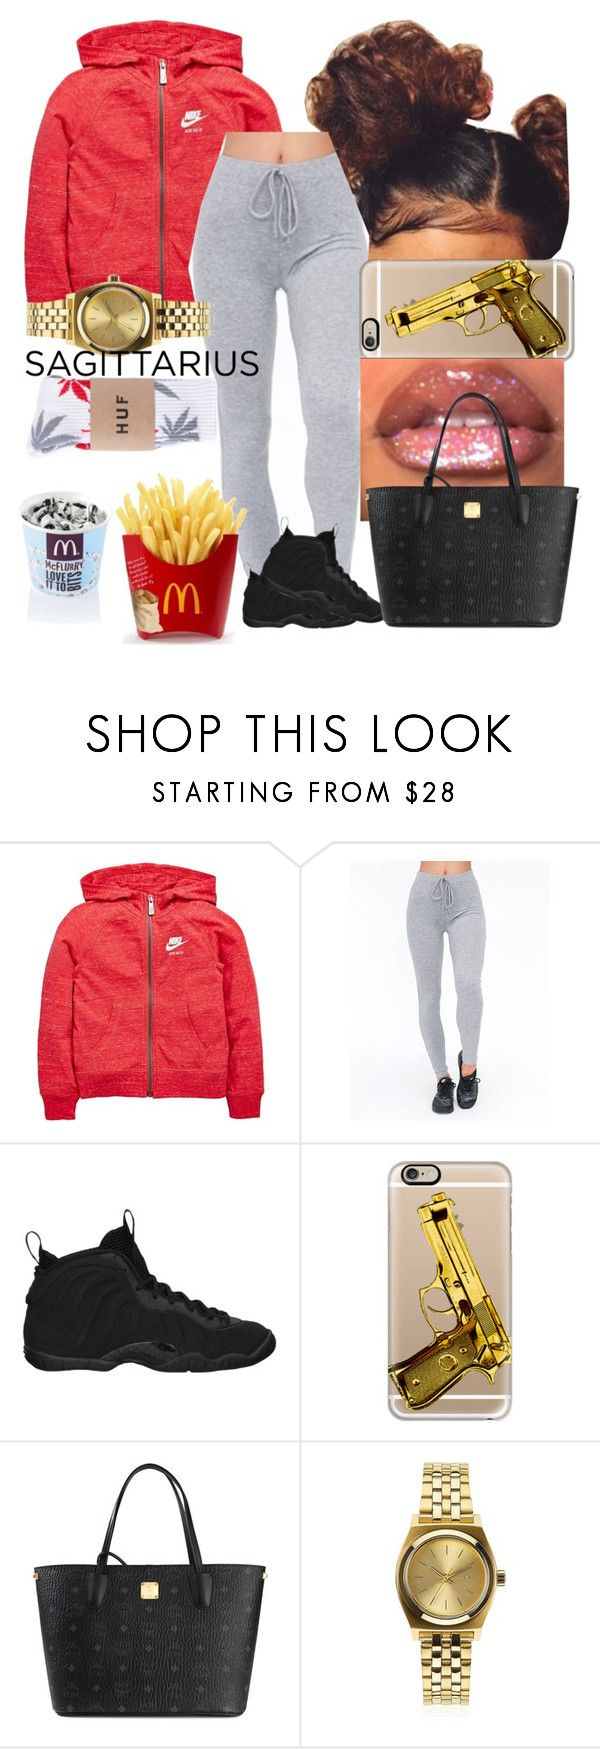 """"""""""" by kisha1891010 ❤ liked on Polyvore featuring interior, interiors, interior design, home, home decor, interior decorating, NIKE, Tiger Mist, Casetify and MCM"""